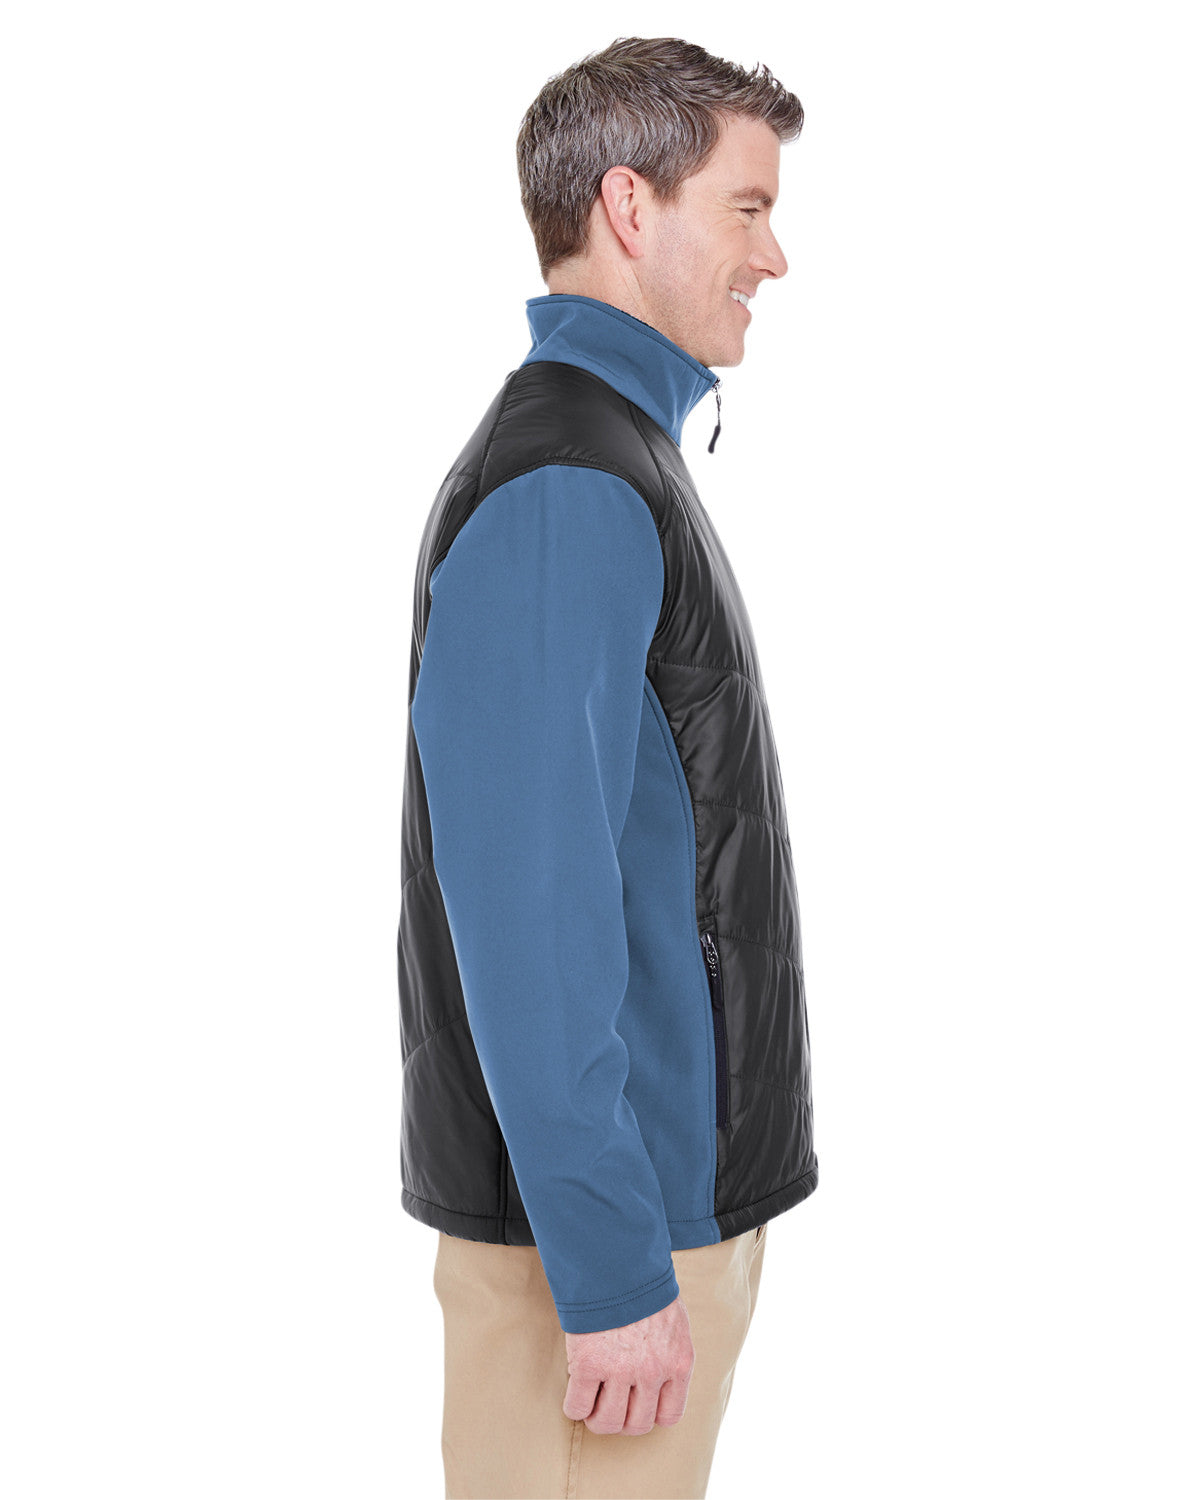 Adult Soft Shell Jacket with Quilted Front & Back by Ultraclub - Discountedrack.com